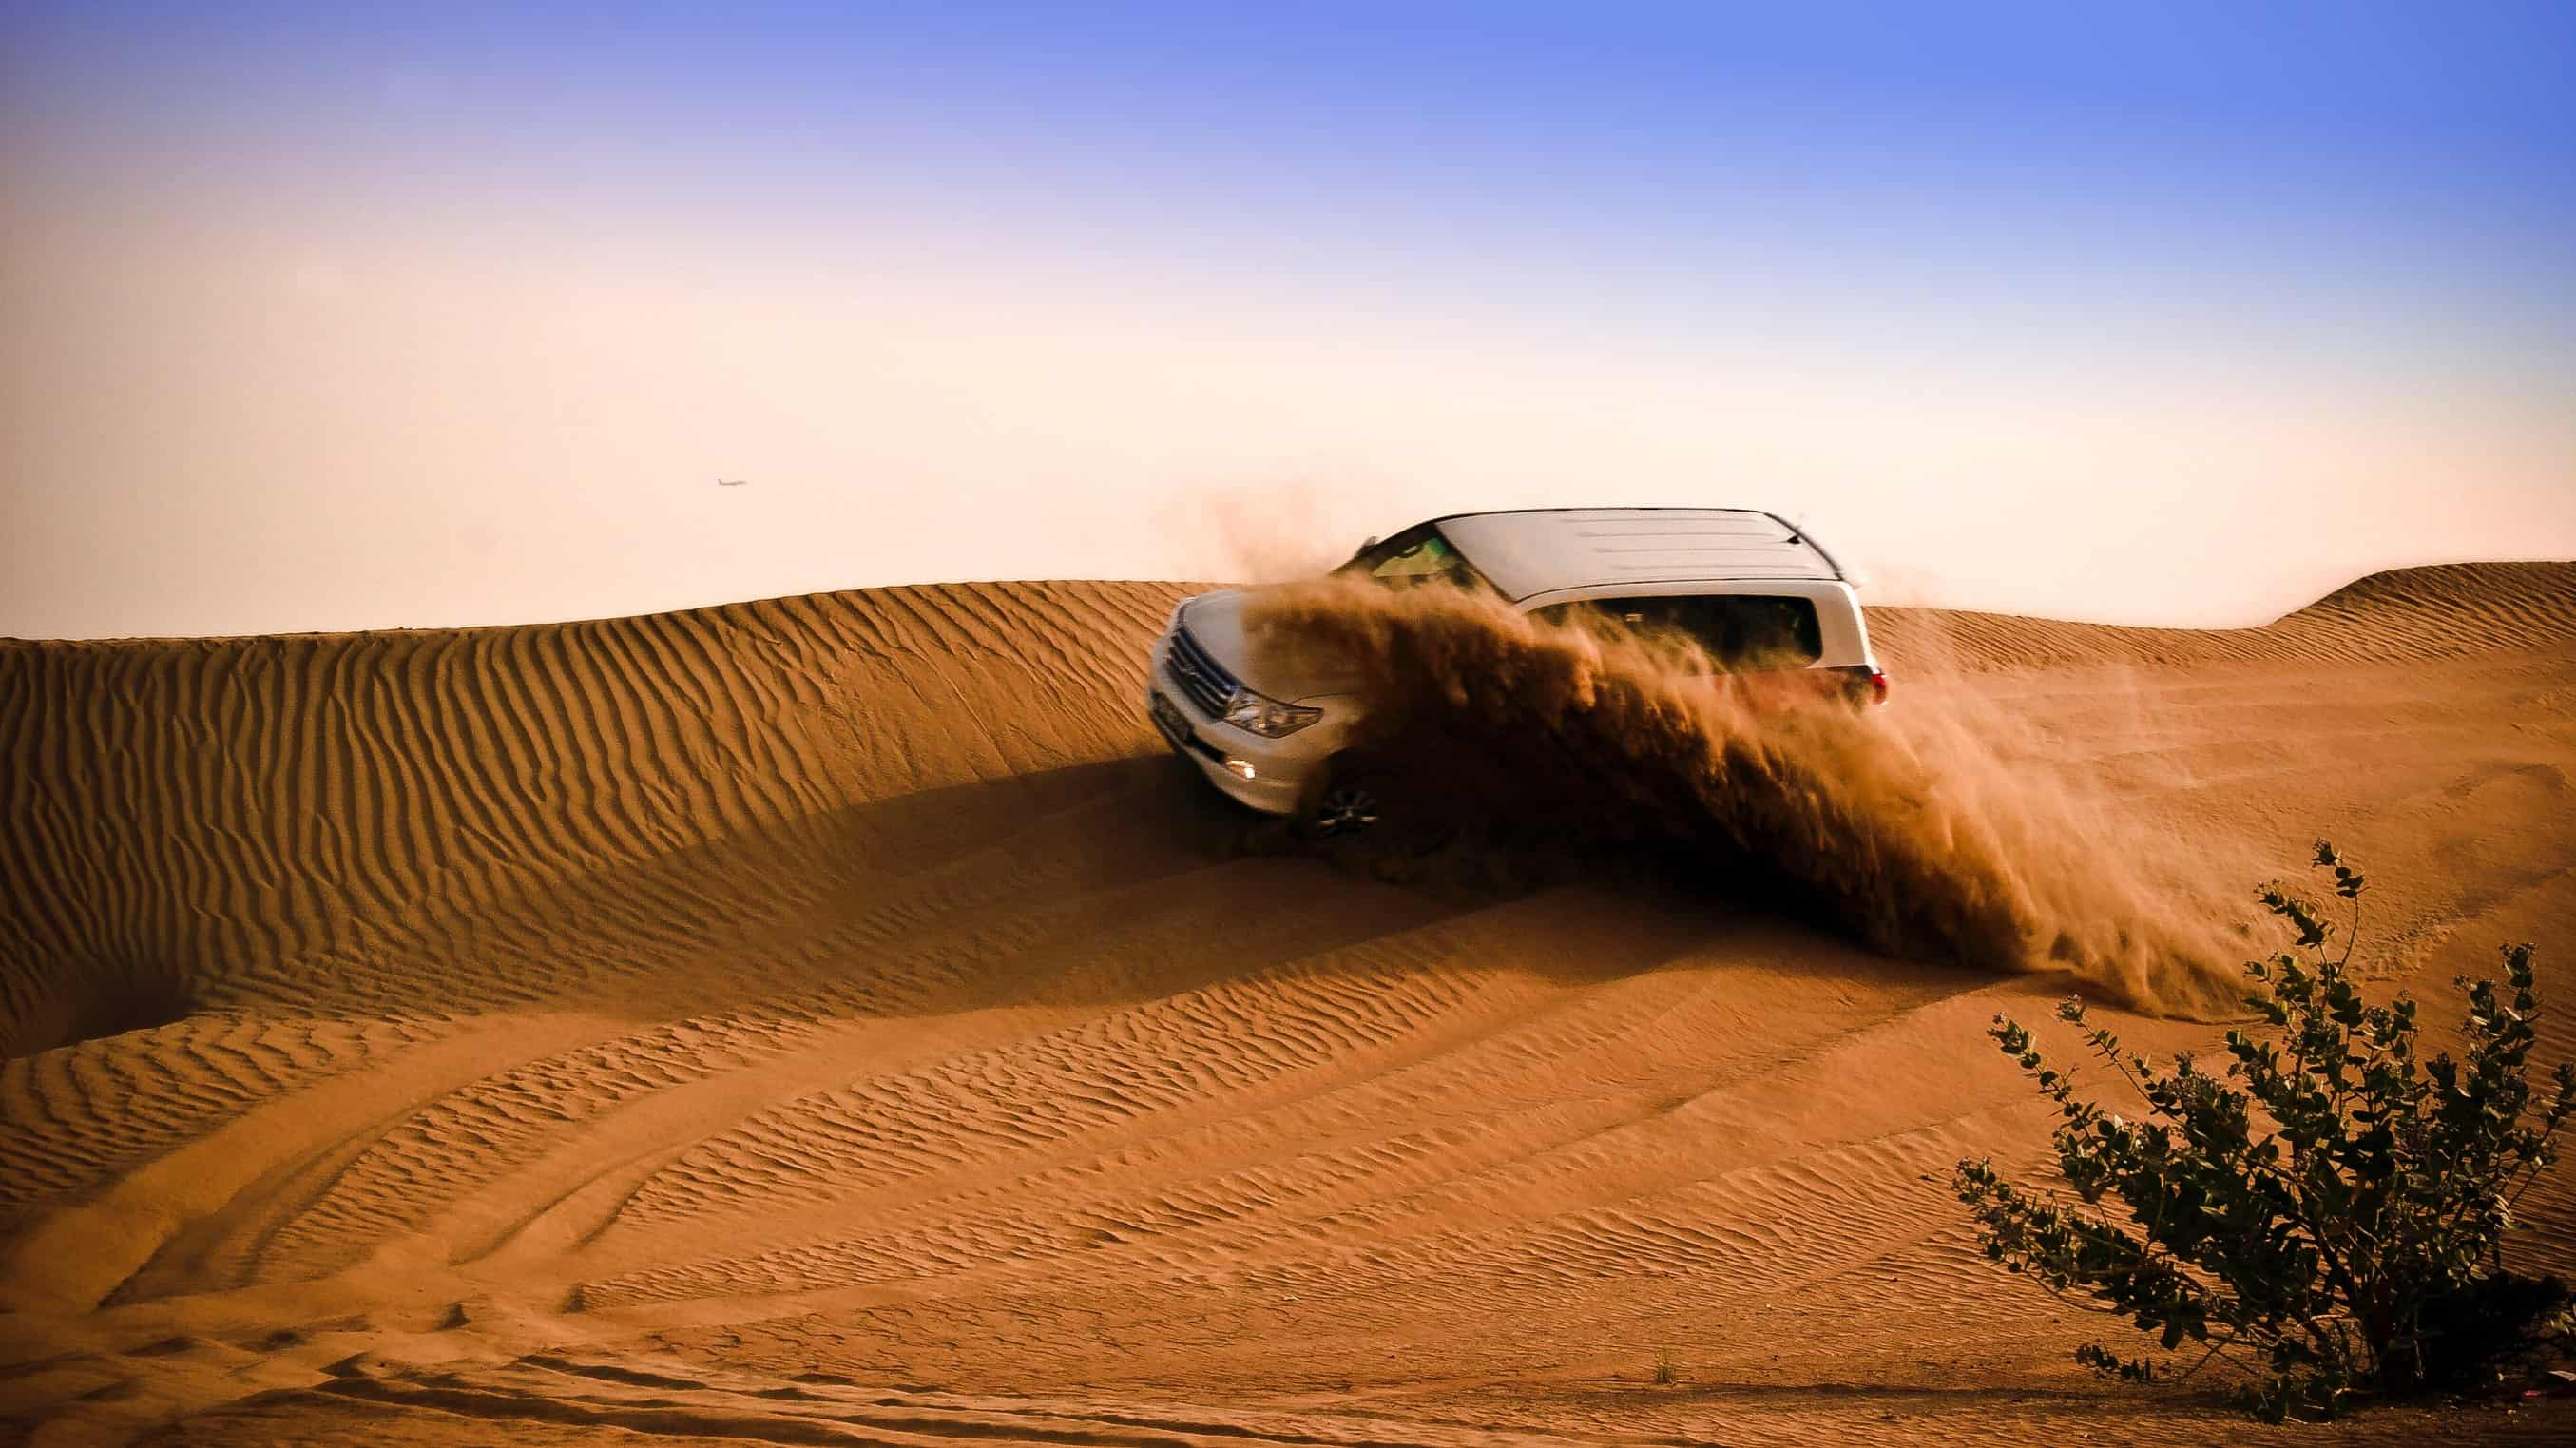 Desert safari in Dubai 2020 becomes risk free when you have Travel Insurance